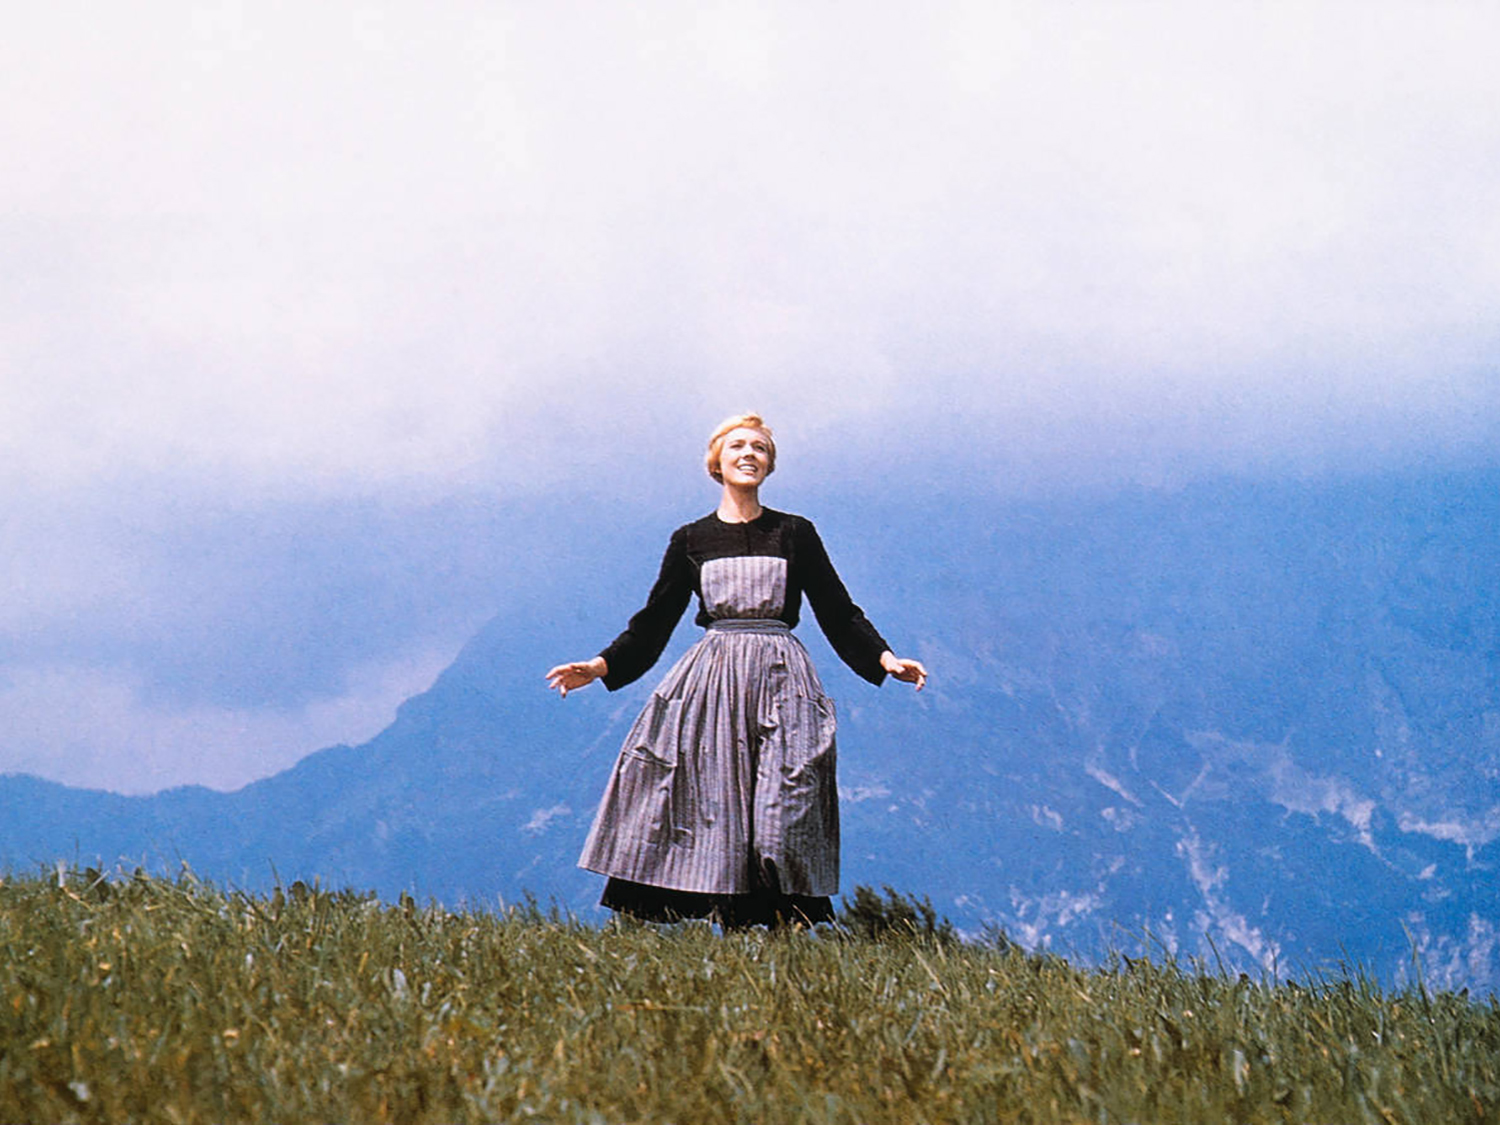 """Julie Andrews in """"Sound of Music"""" photo credit Glasshouse Images/Alamy Stock Photo"""